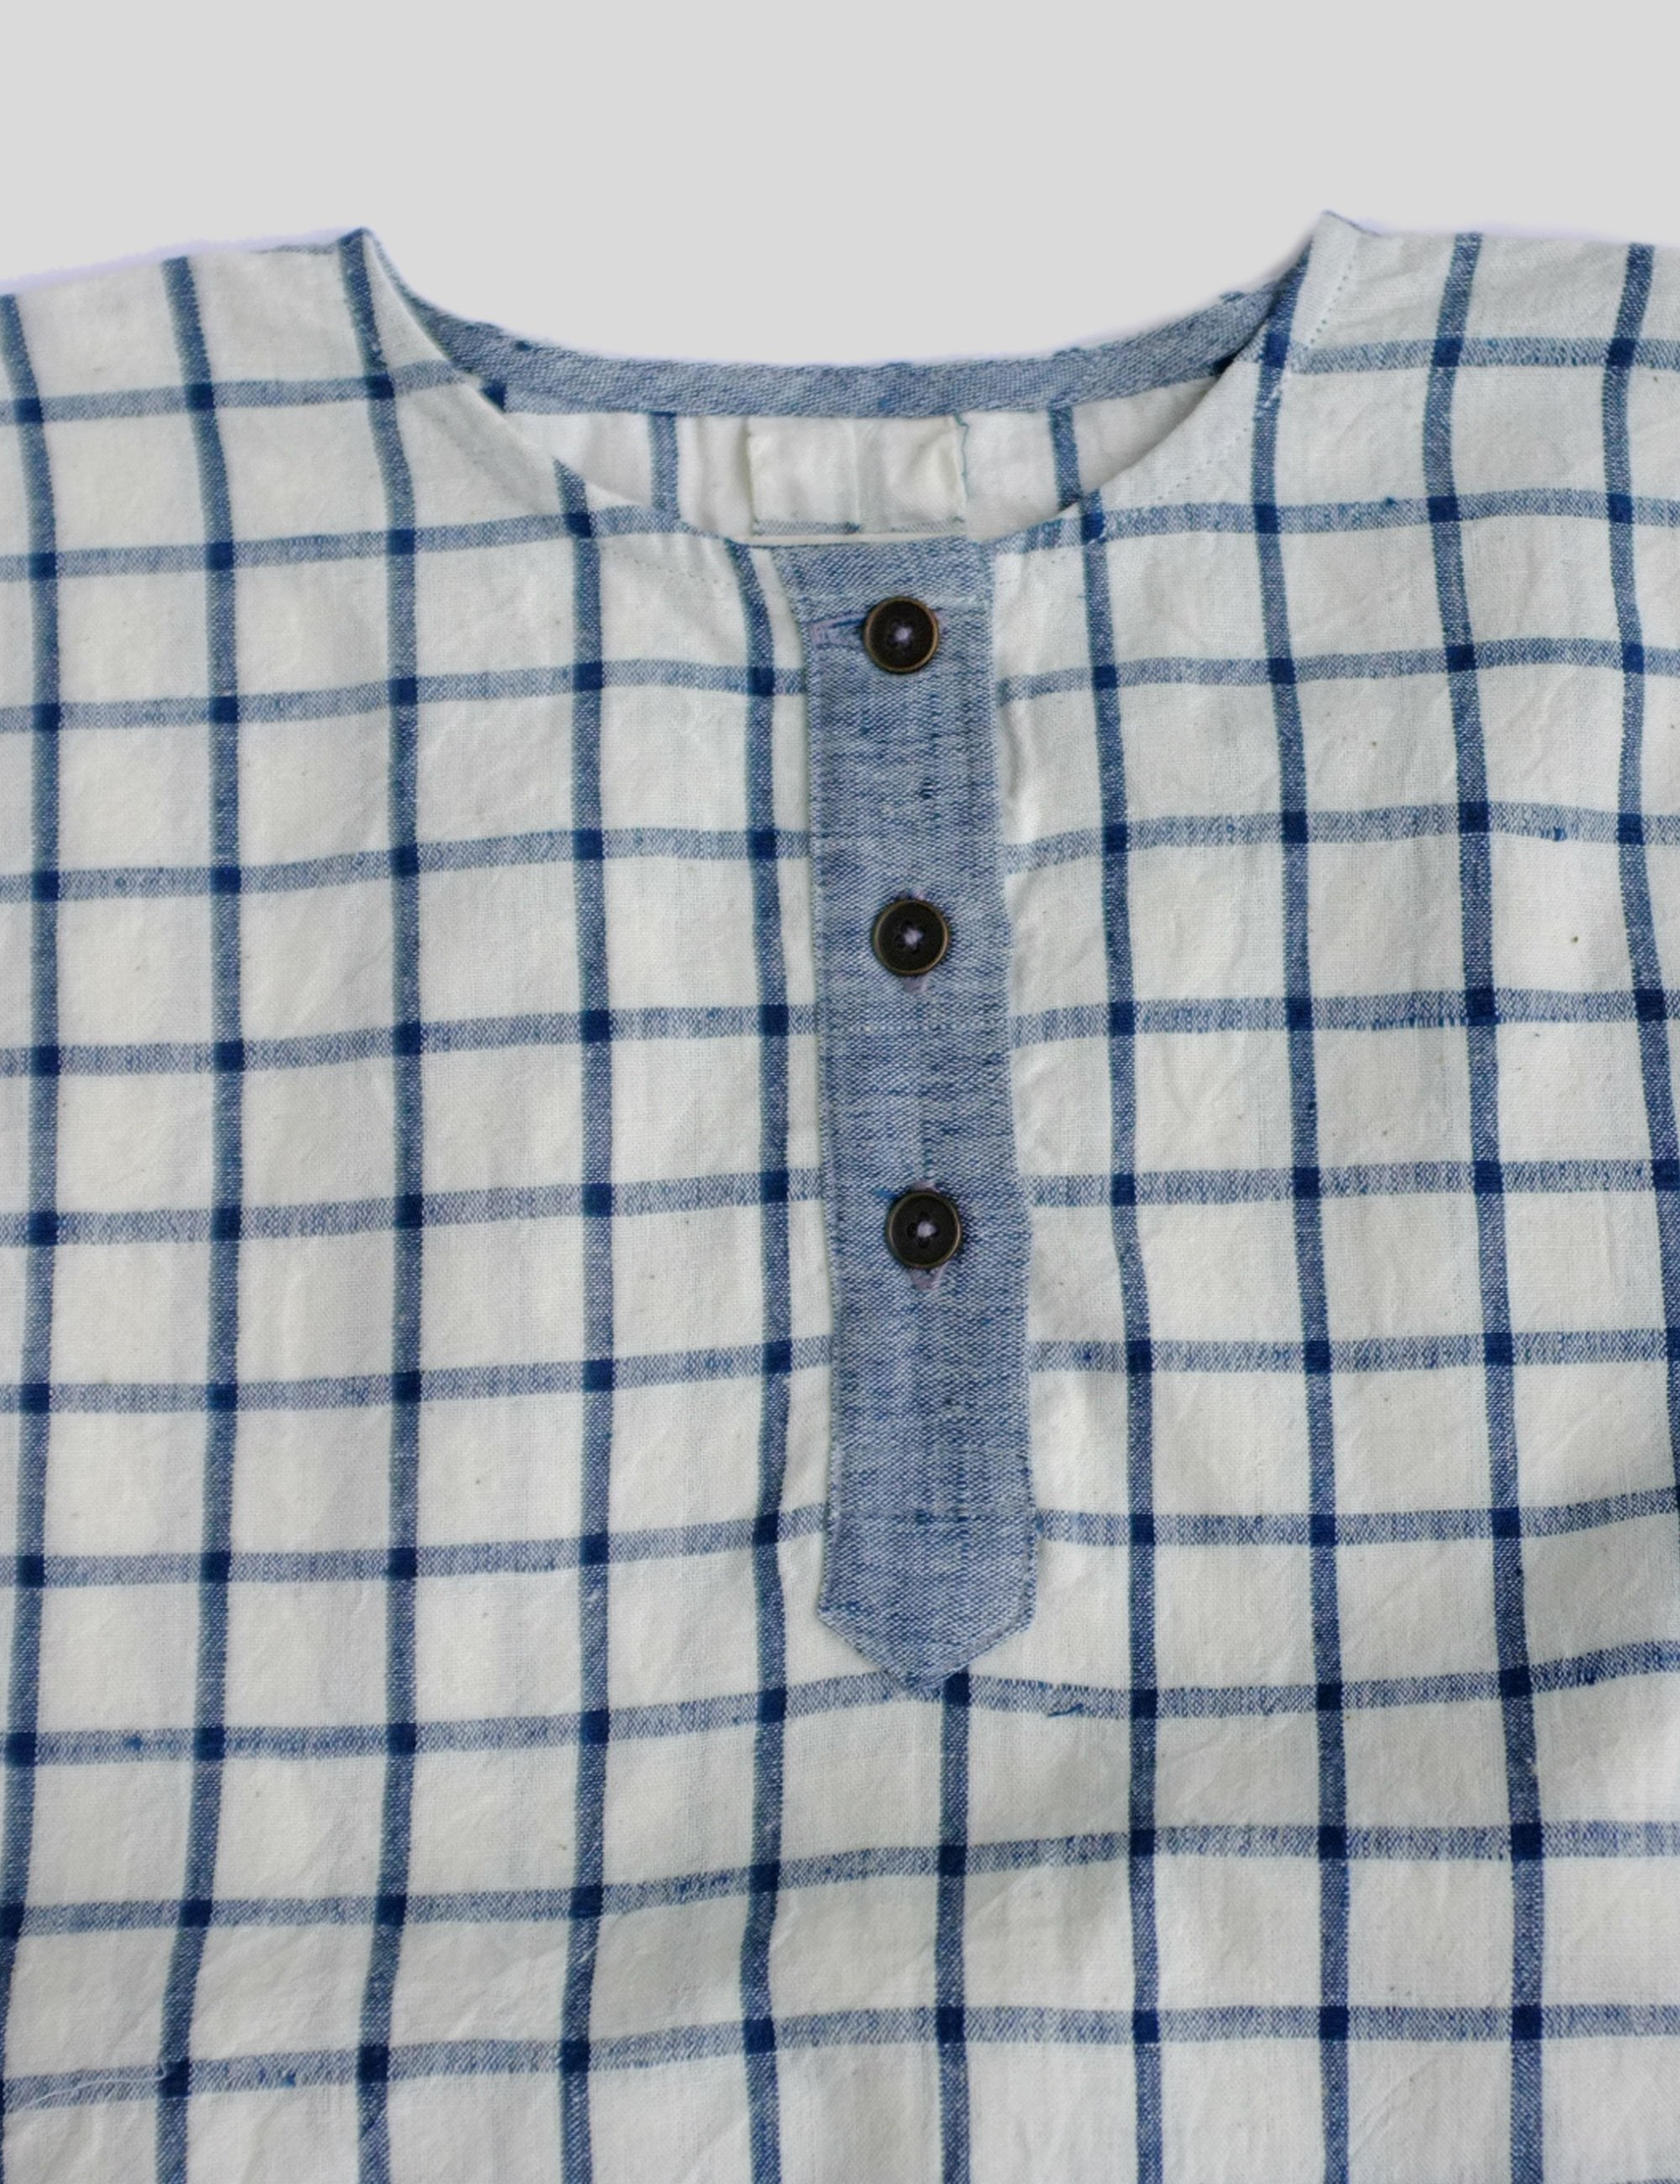 Loose Fit with Placket and Contrast Pocket Shirt in Checks for Boys